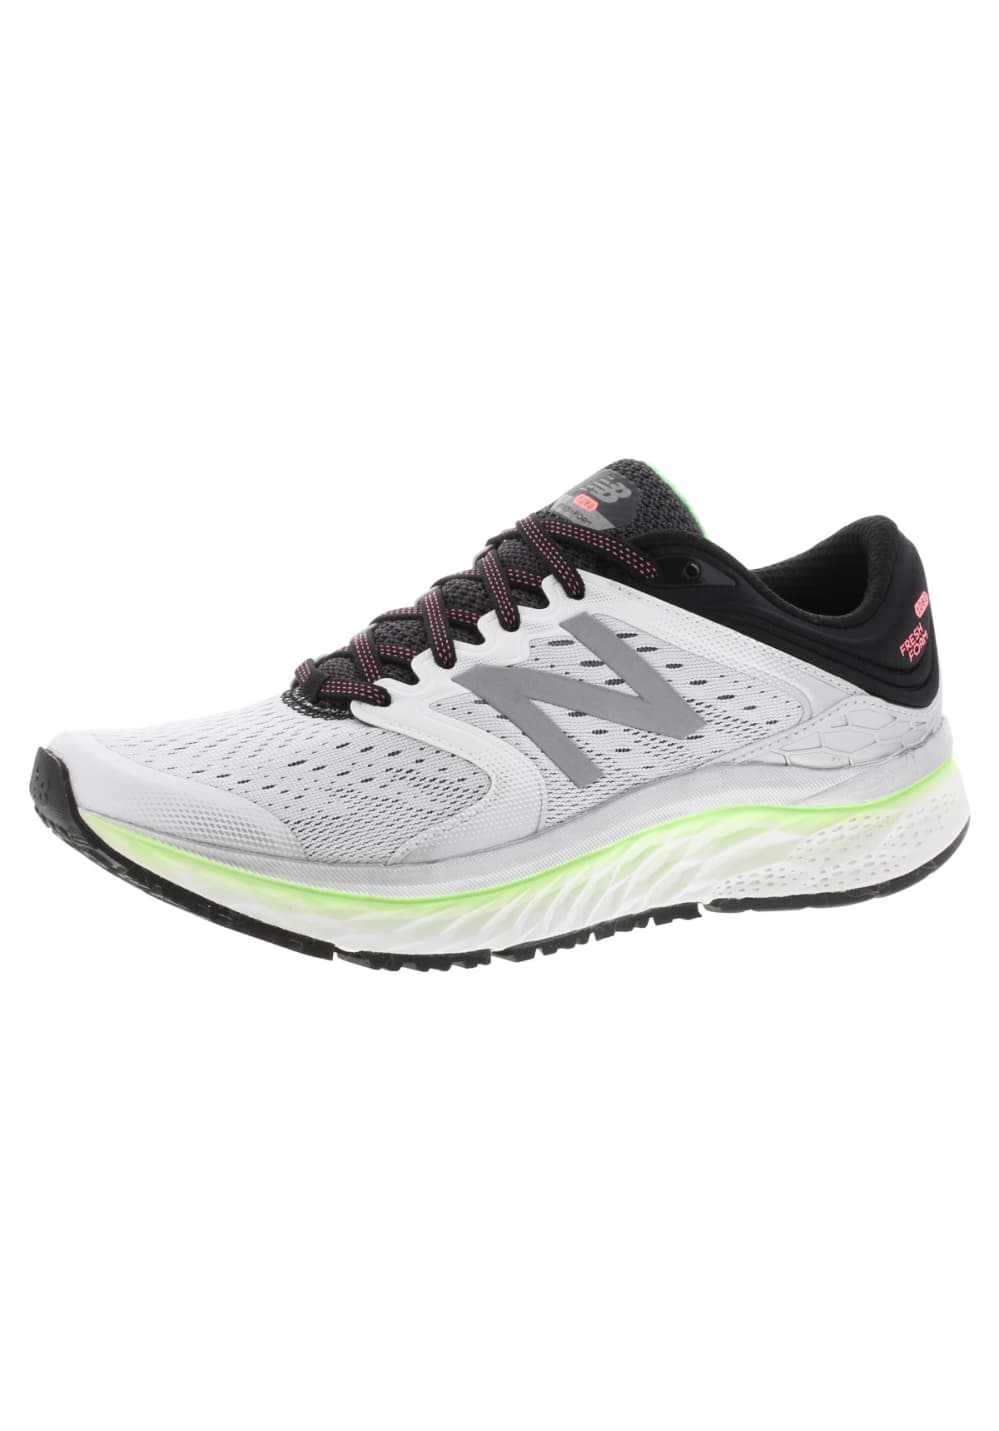 1123996eeab New Balance Fresh Foam 1080 V8 - Running shoes for Women - White | 21RUN